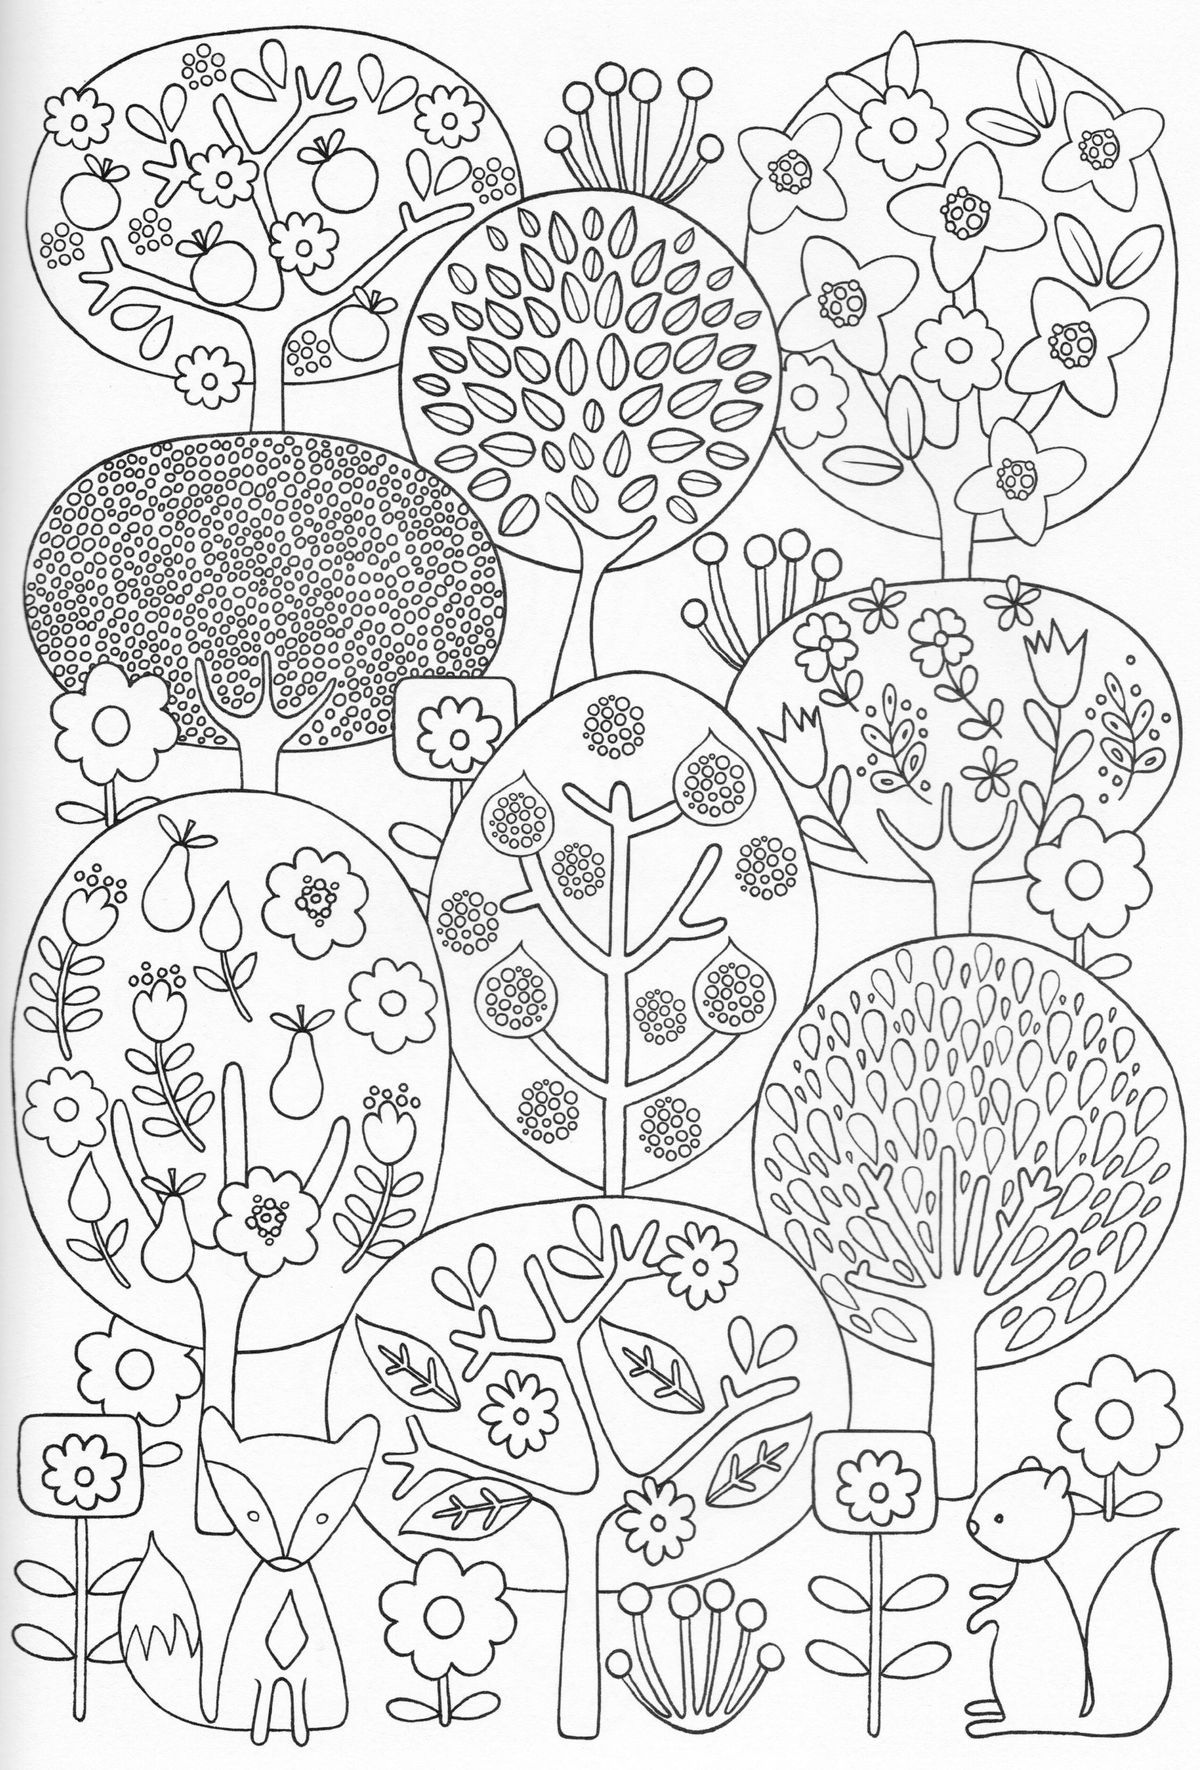 Coloring Book For Me Mod Apk Also Coloring Book For Kids Free As Well As Where The Wild Things Are Colorin Mandala Coloring Pages Coloring Books Coloring Pages